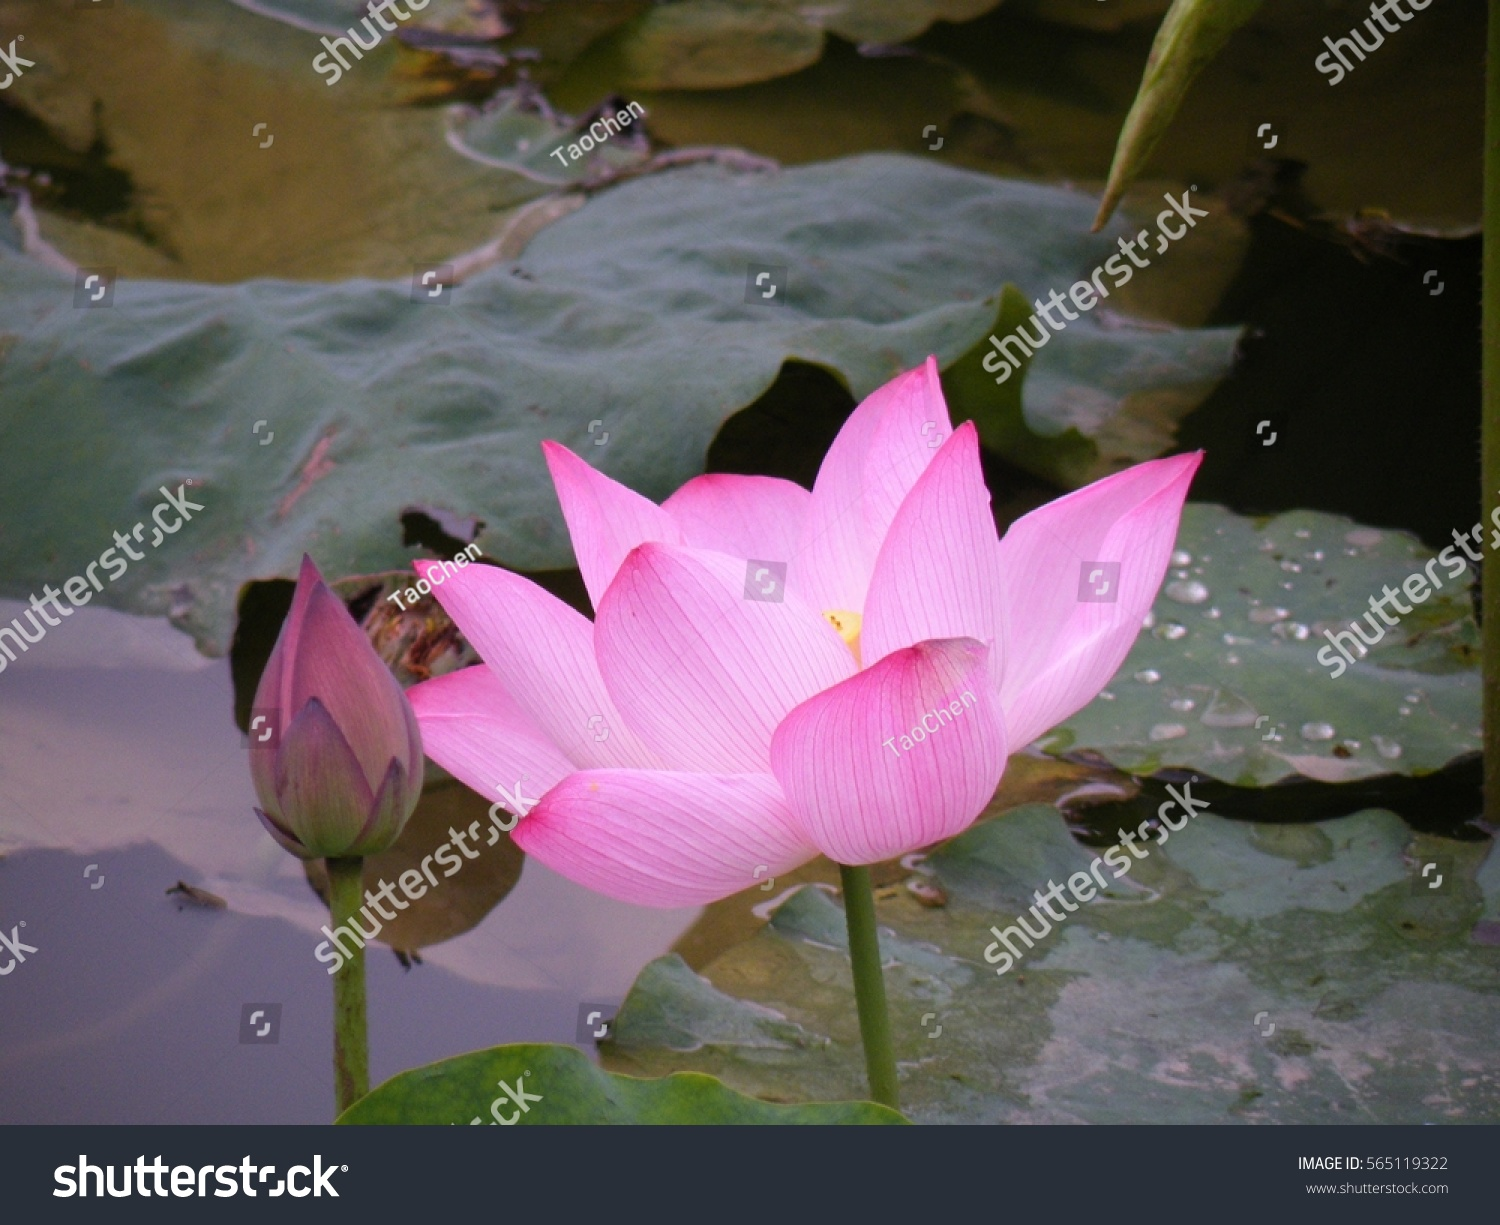 flower vignette added lotus flower beautiful stock photo, Beautiful flower